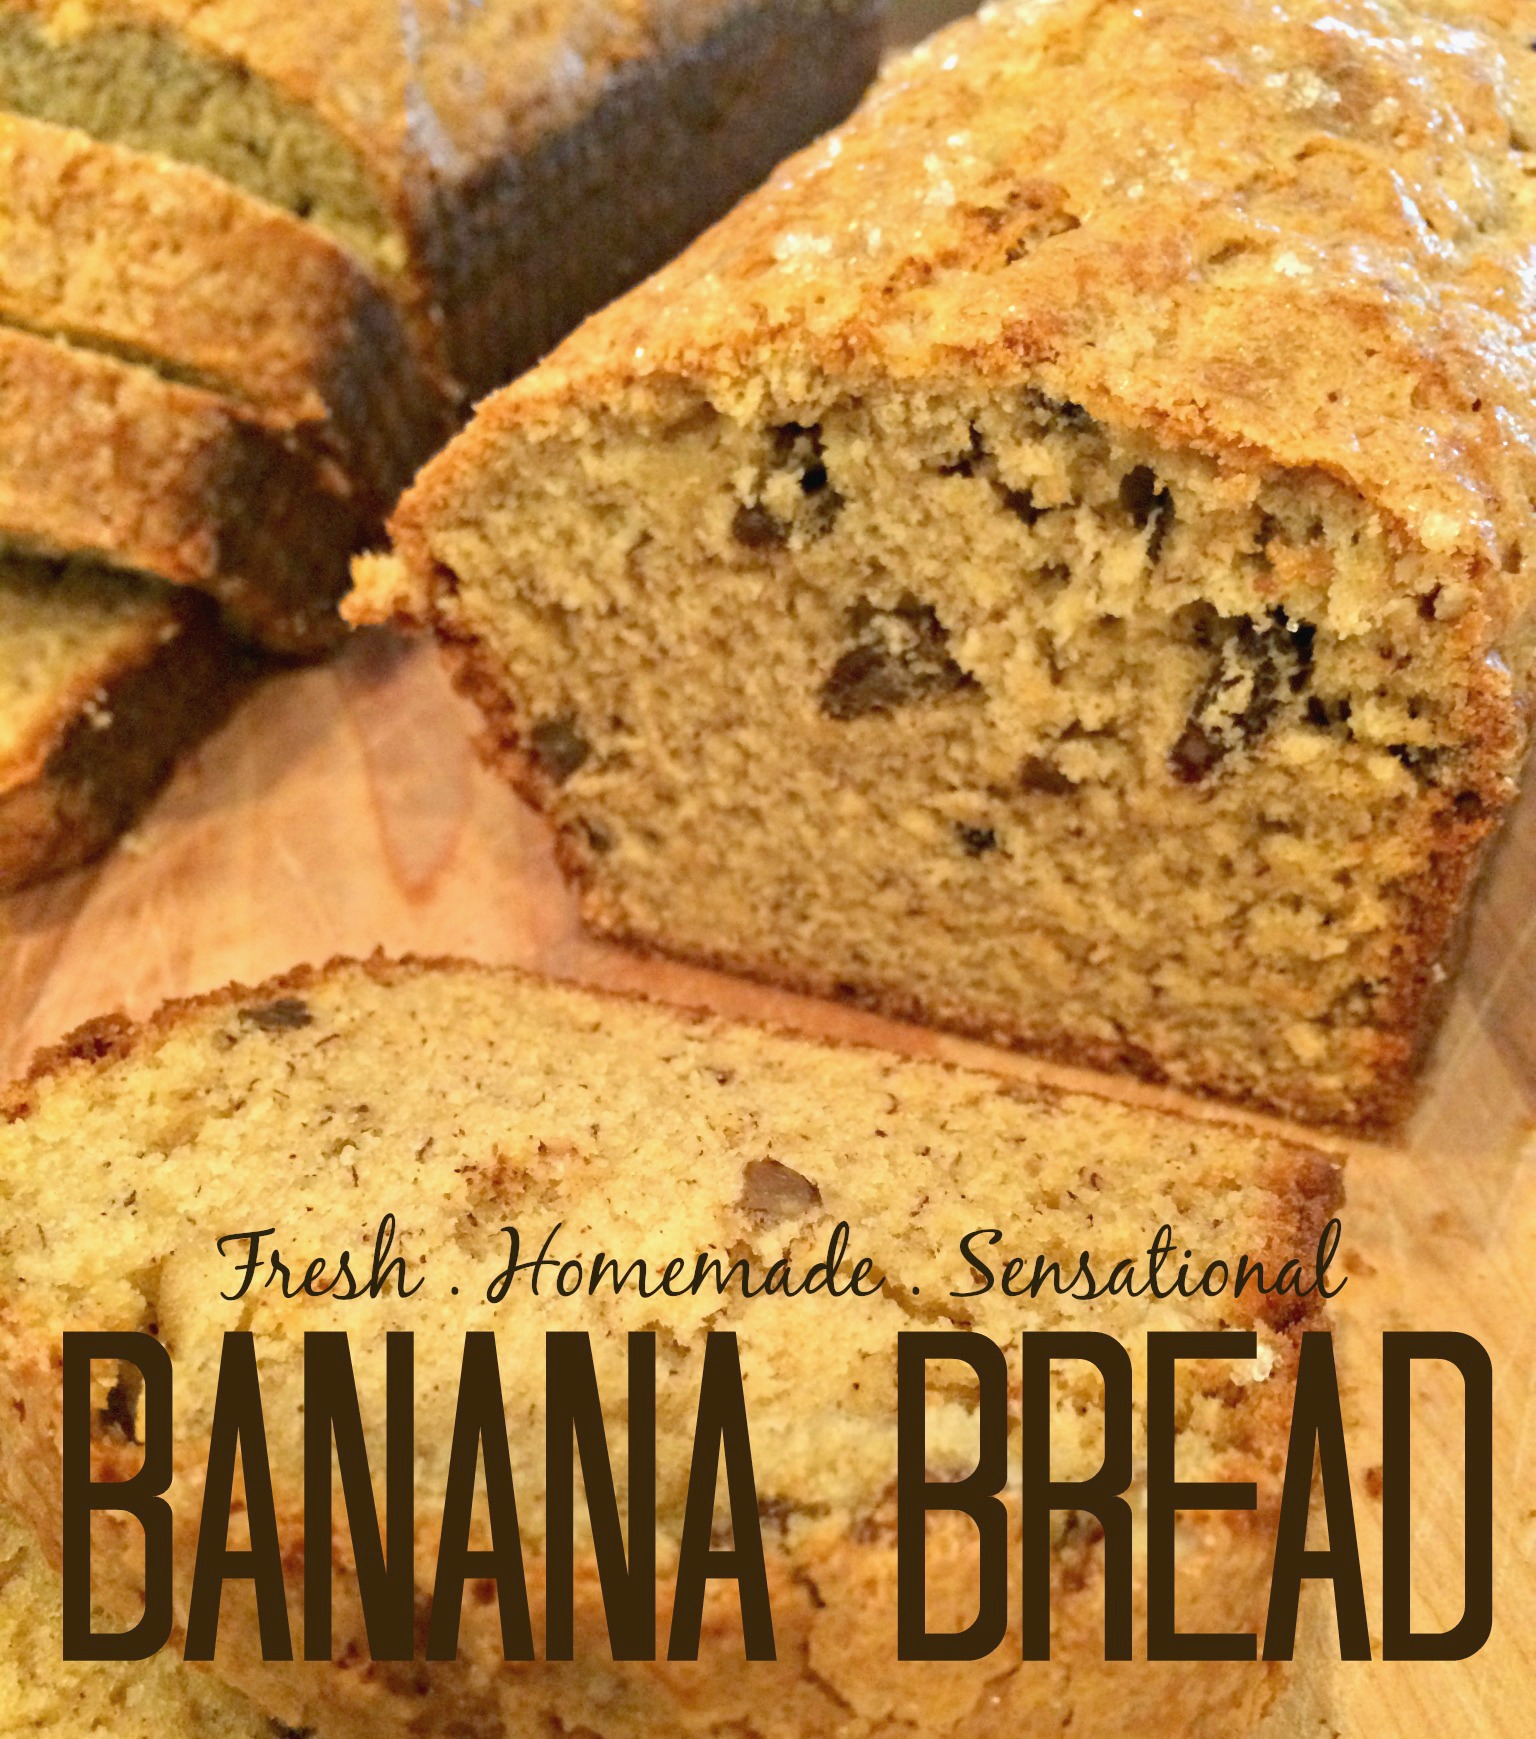 Banana bread recipe farm fresh for life real food for health banana 18 forumfinder Image collections